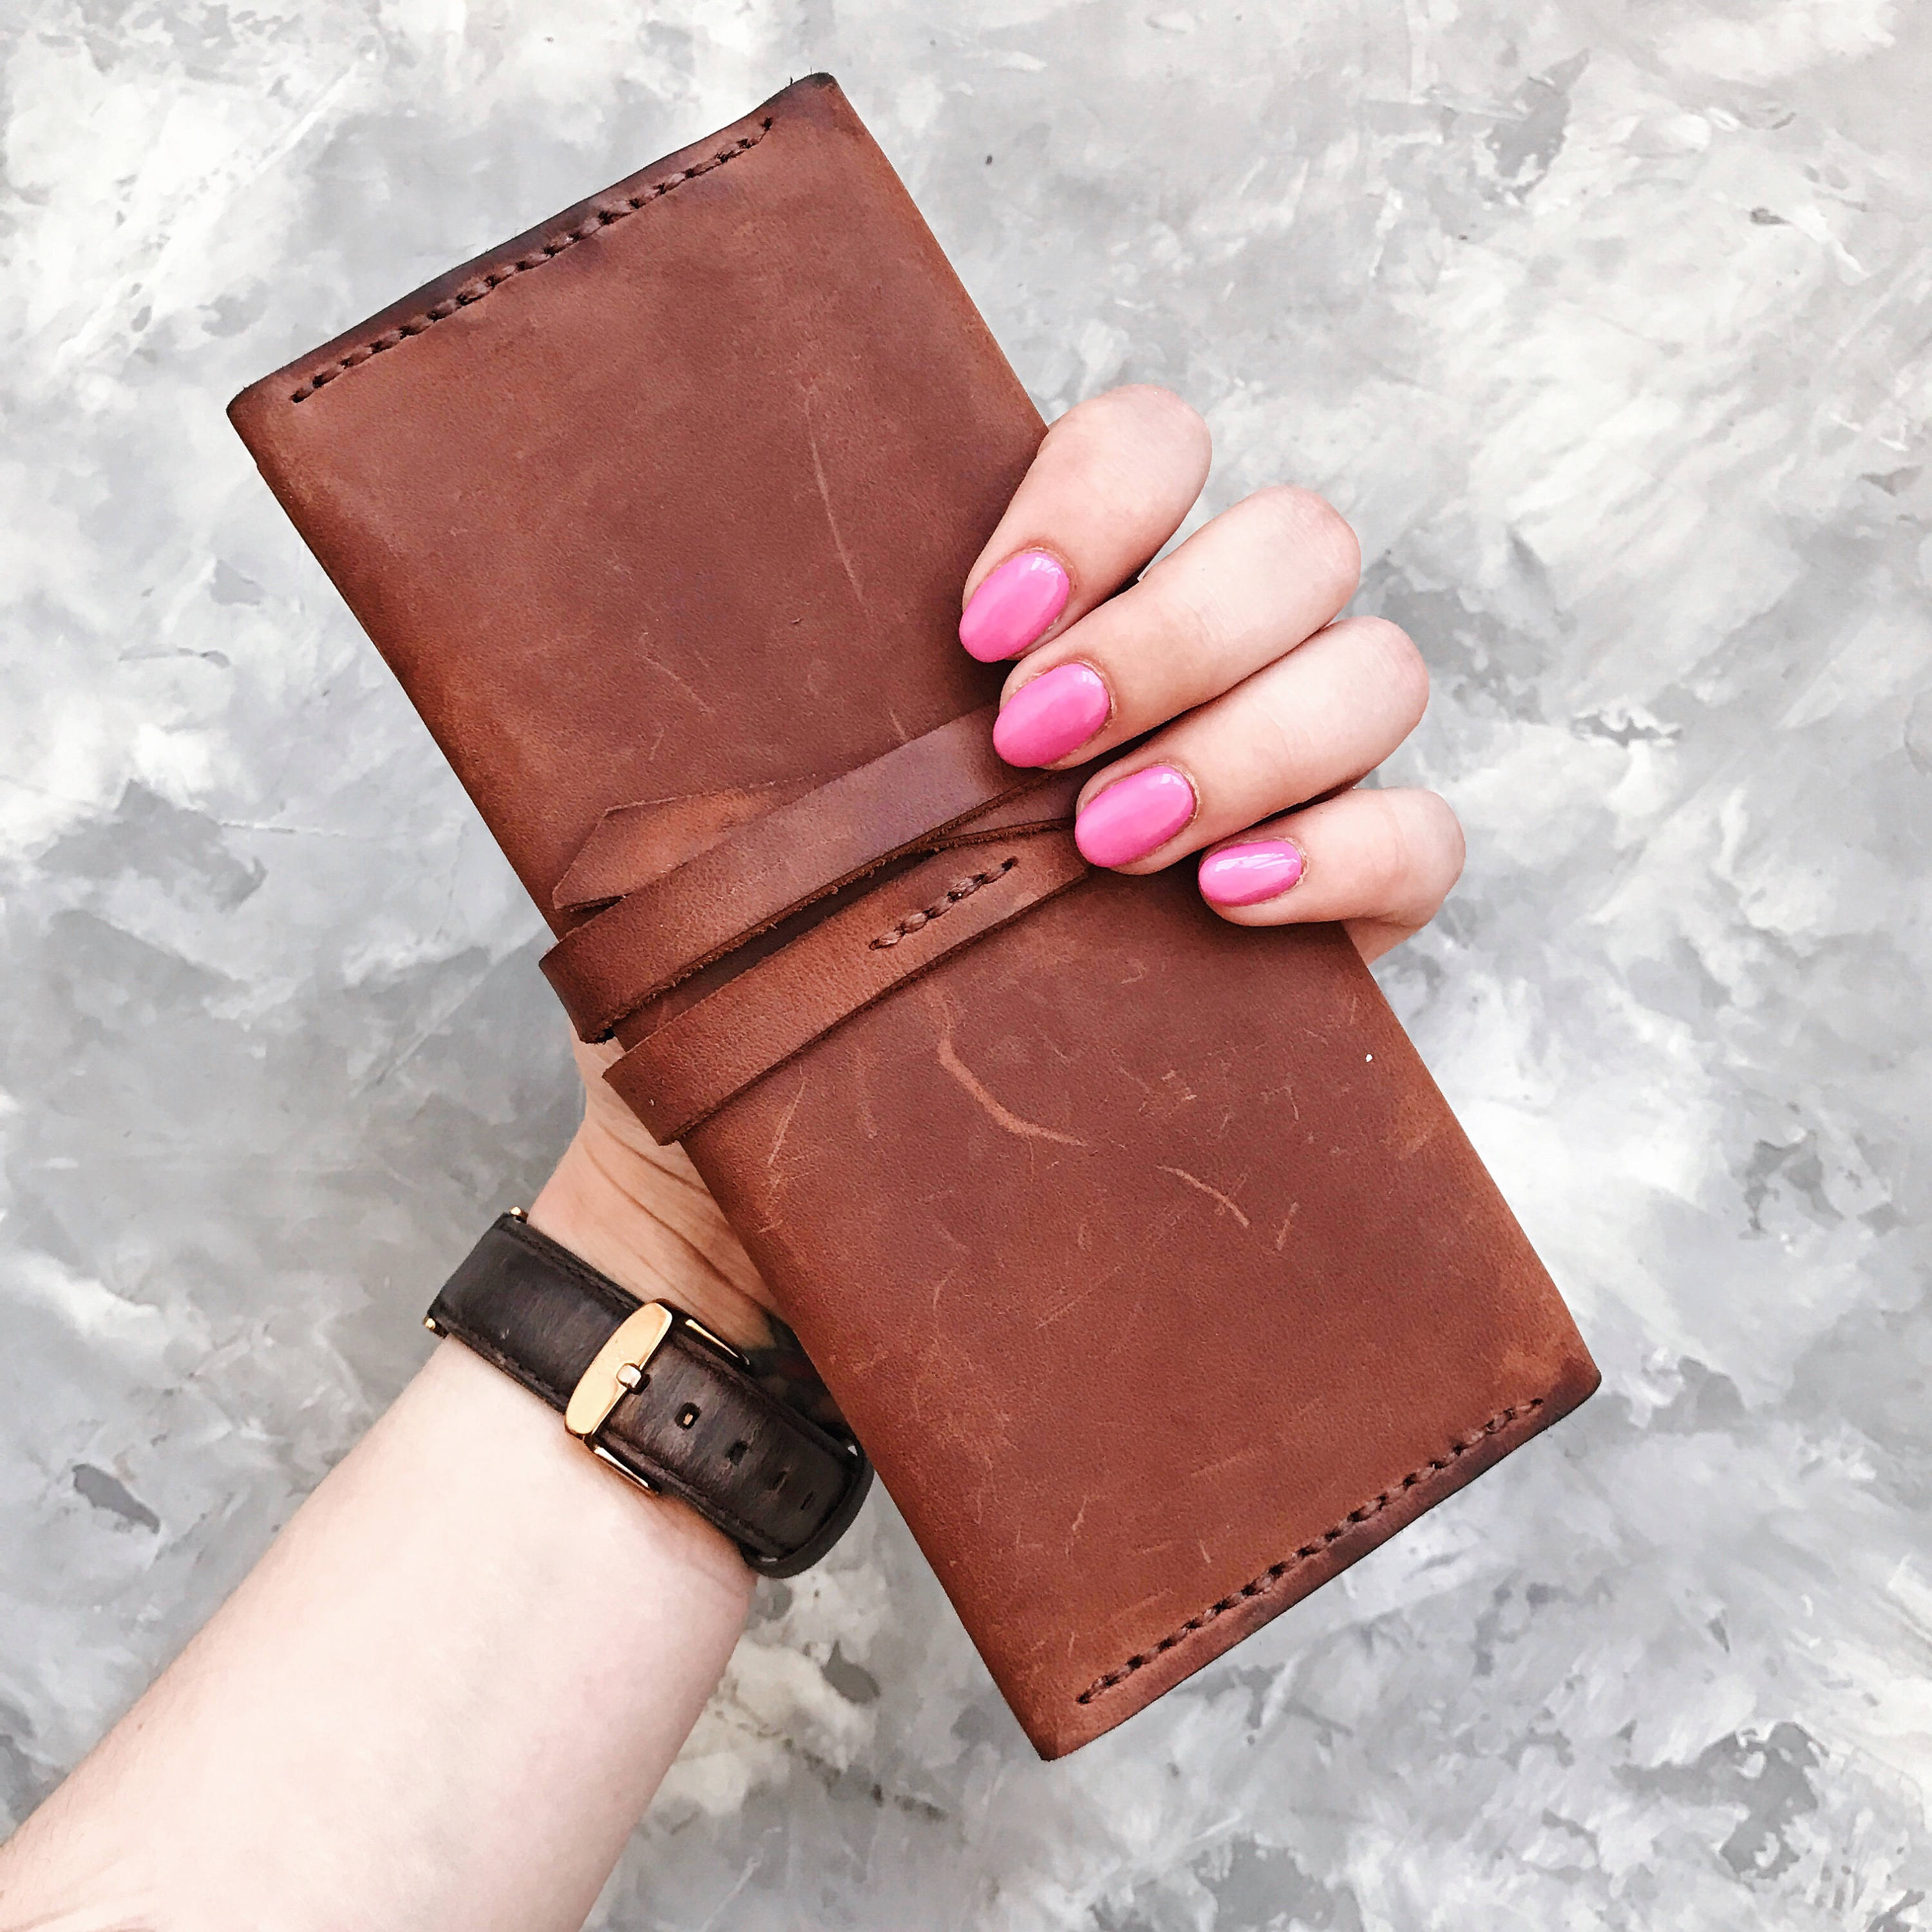 130717a8cf82 Travel Document Holder images